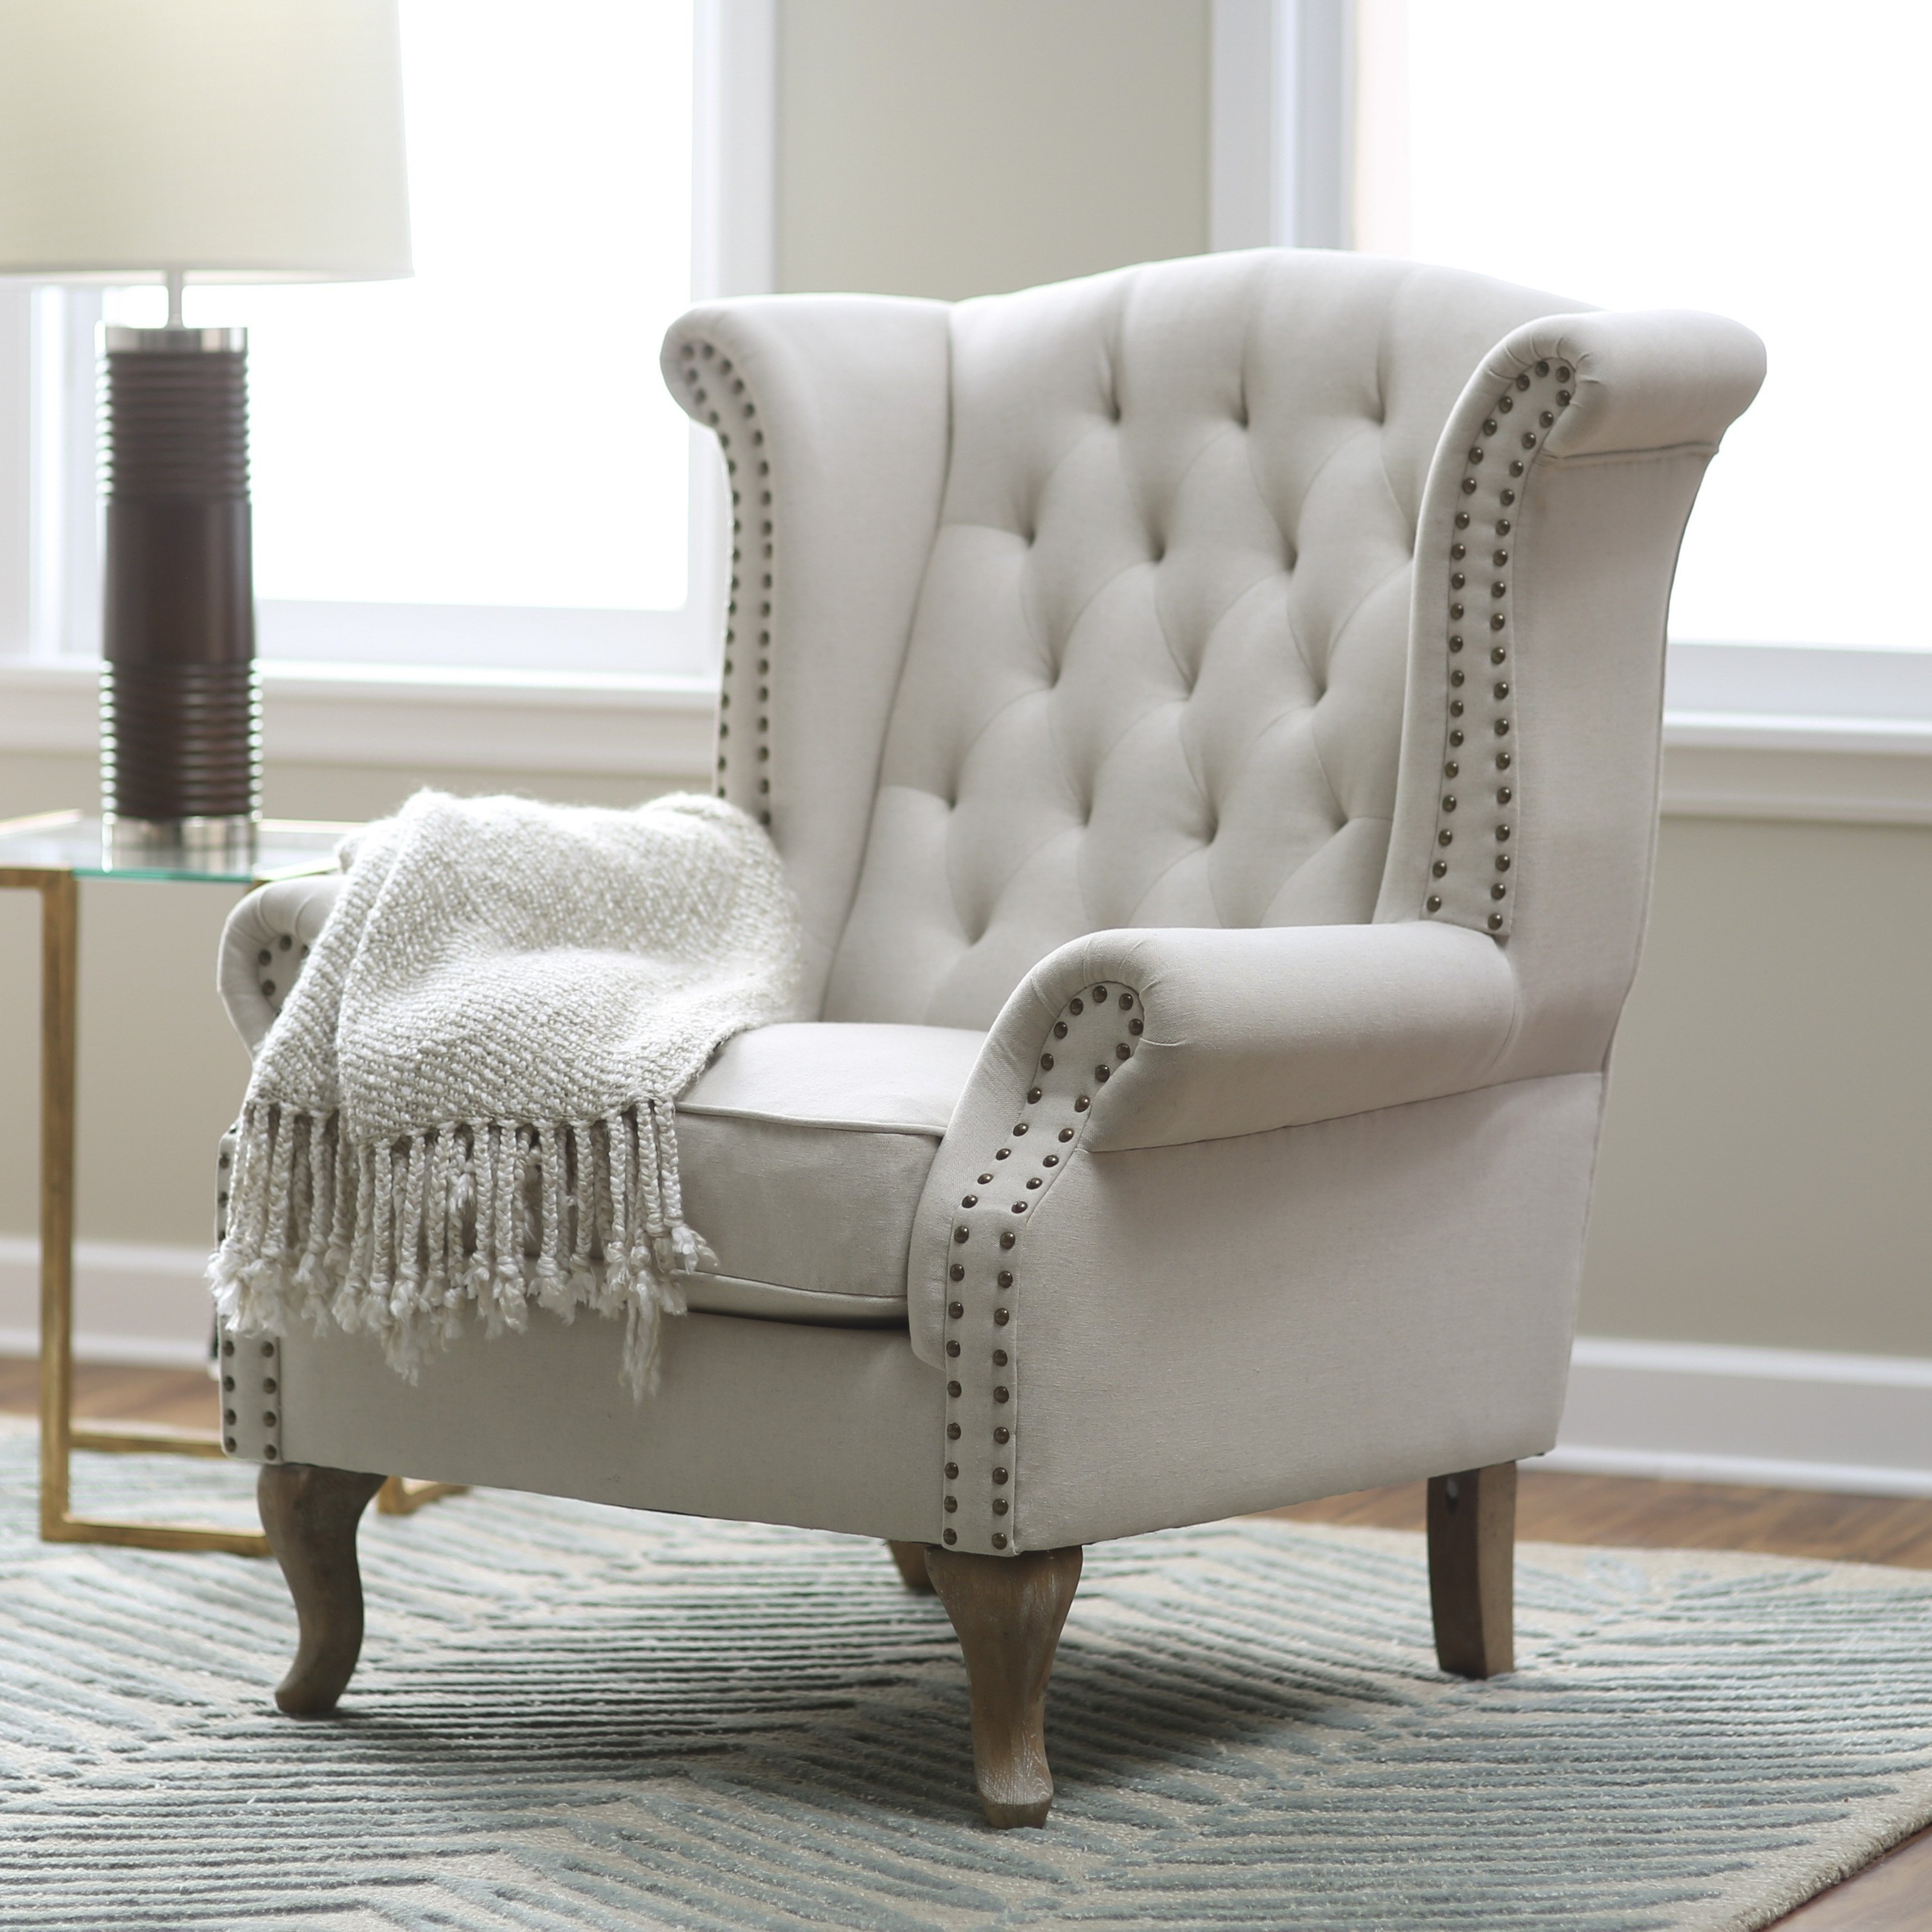 Comfortable Living Room Furniture fortable Living Room Chairs Design – Accent Chairs with